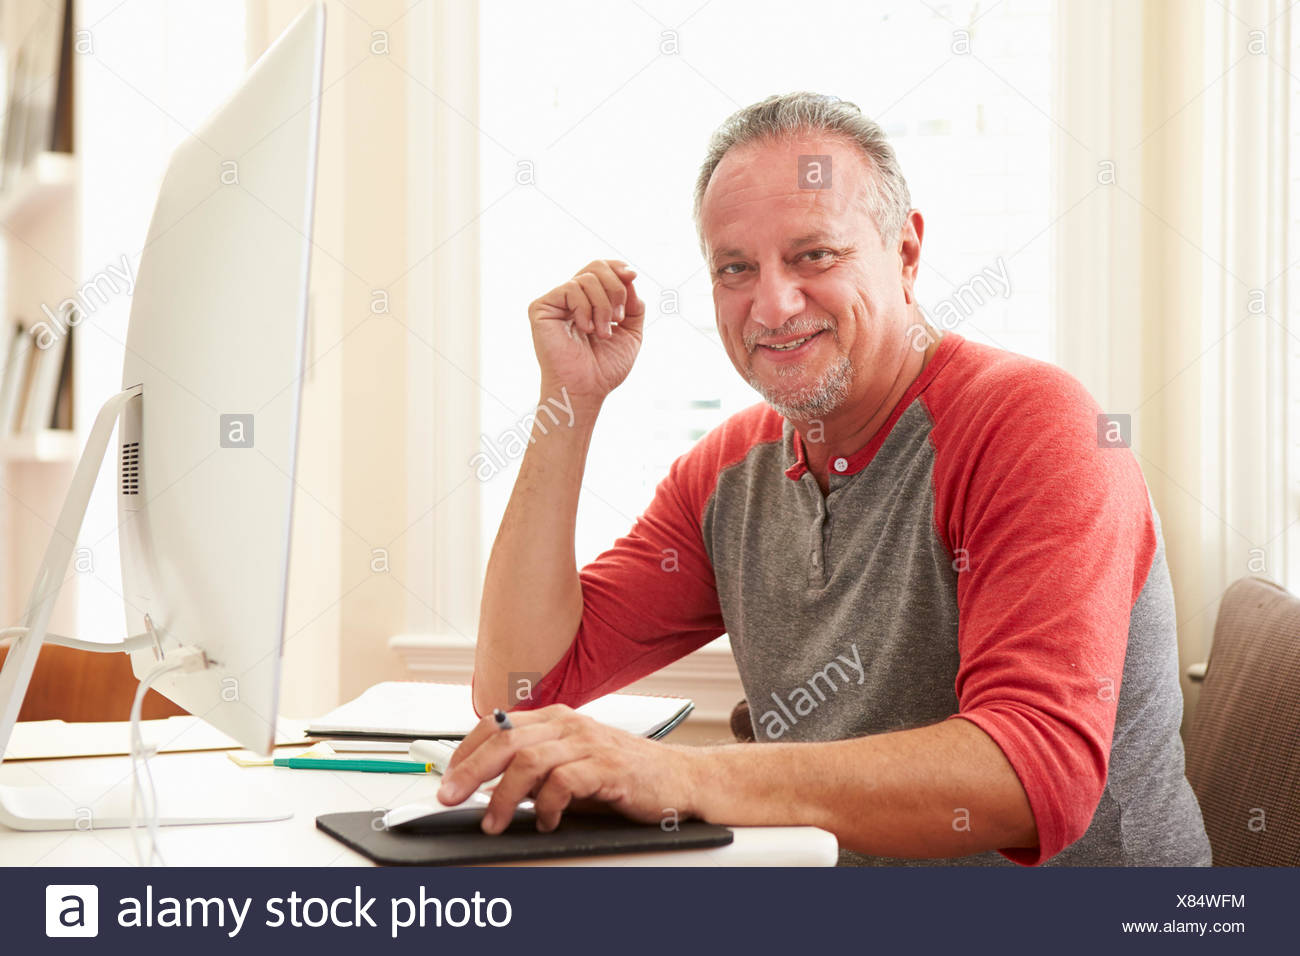 Portrait Of Senior Man Using Computer At Home - Stock Image